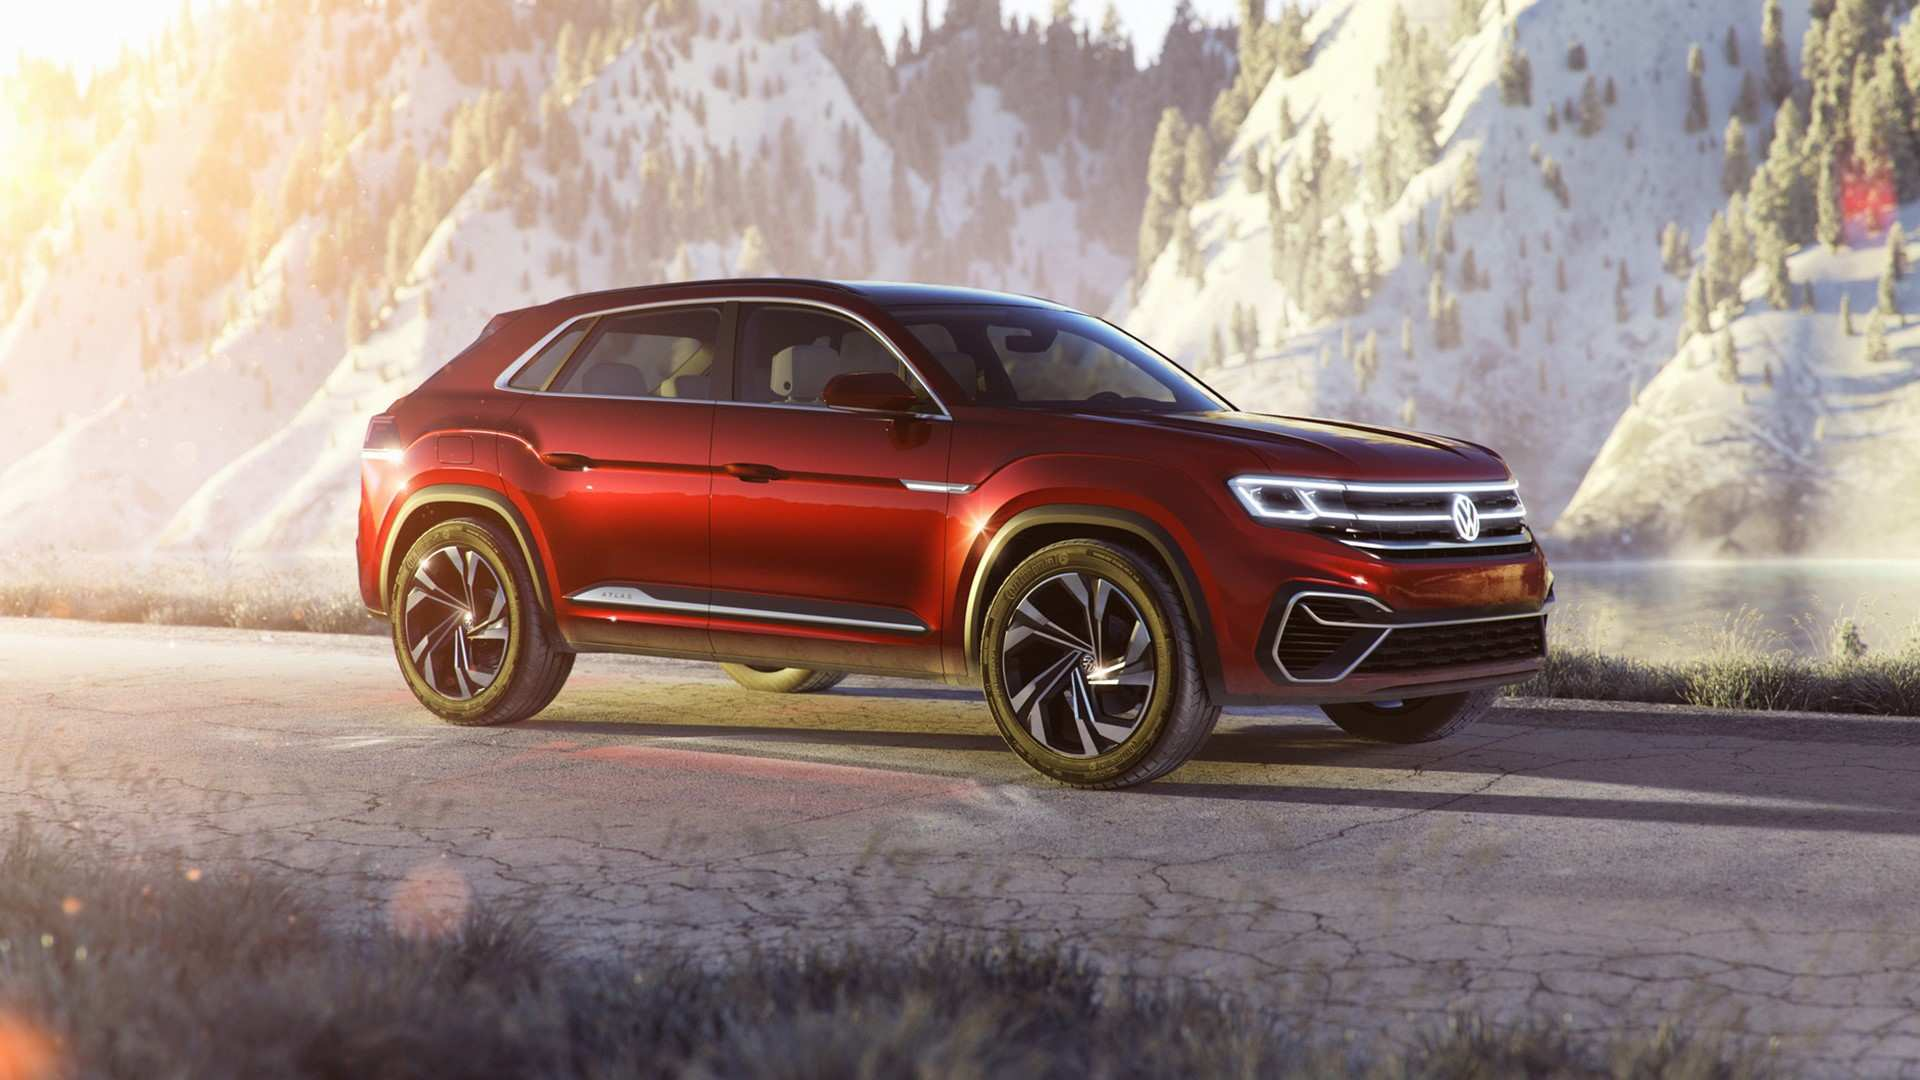 92 Great VW Touareg 2020 Canada Price with VW Touareg 2020 Canada